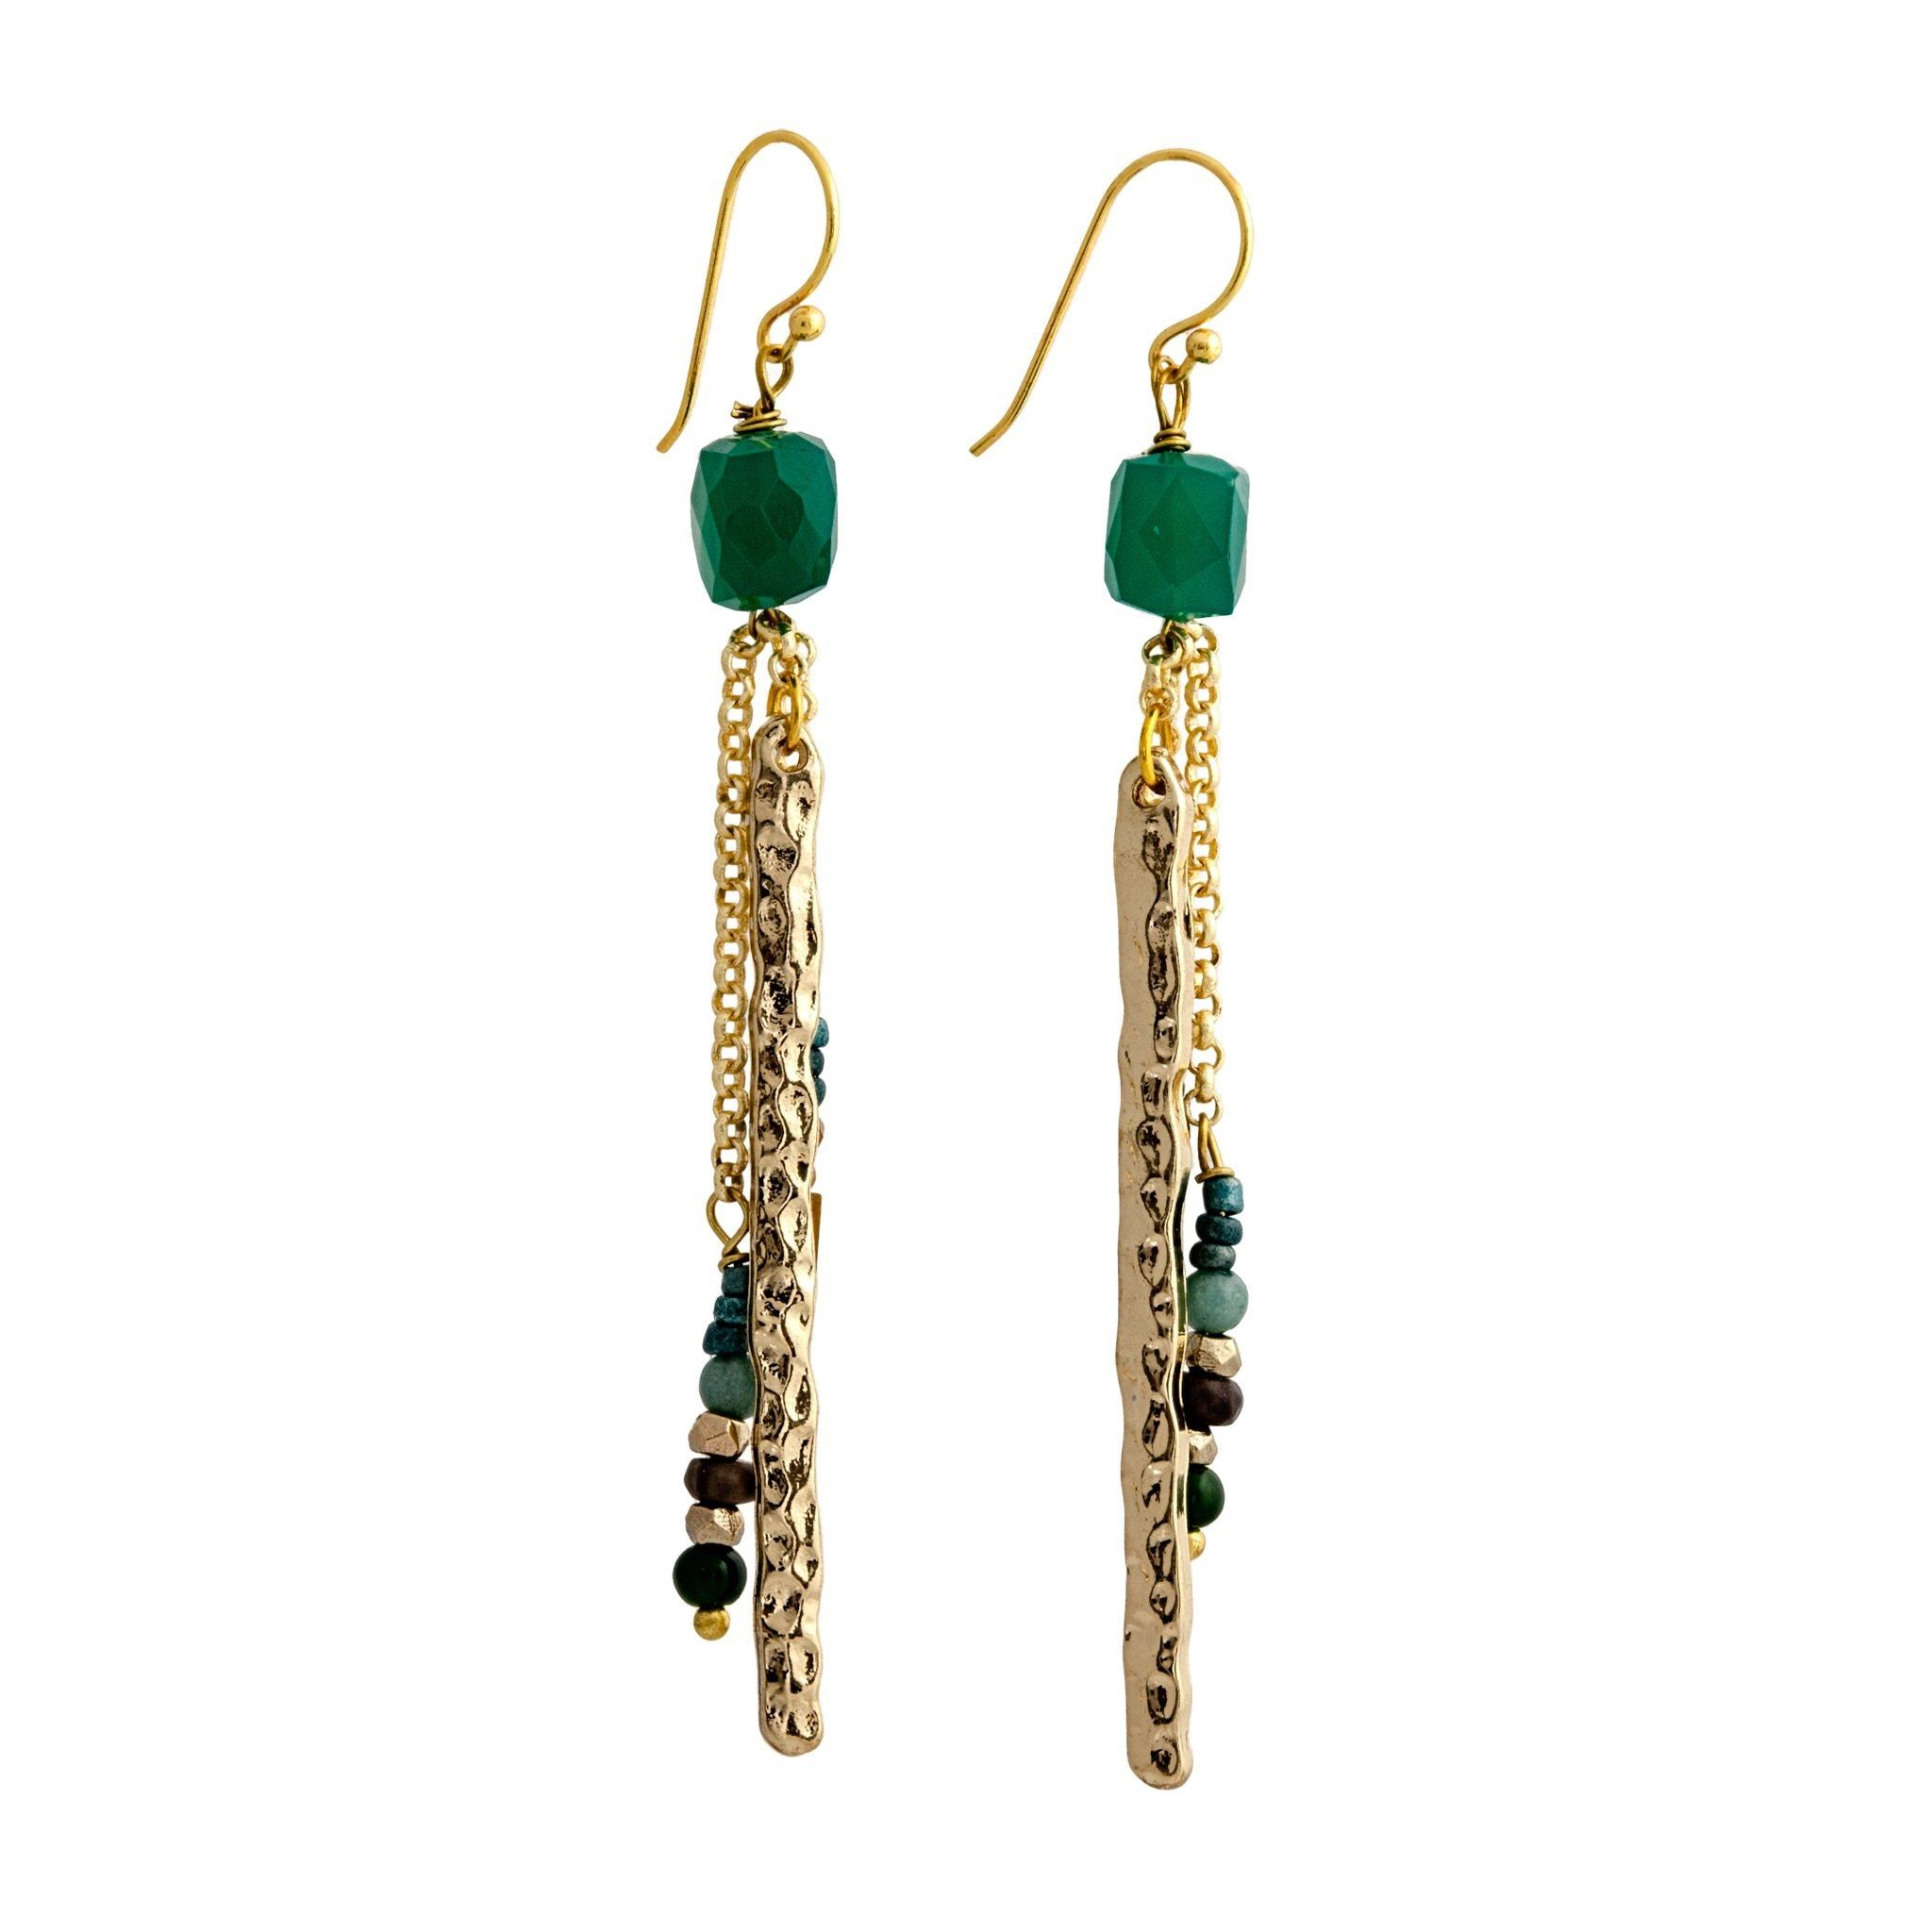 SIA green onyx earrings - MadamSiam